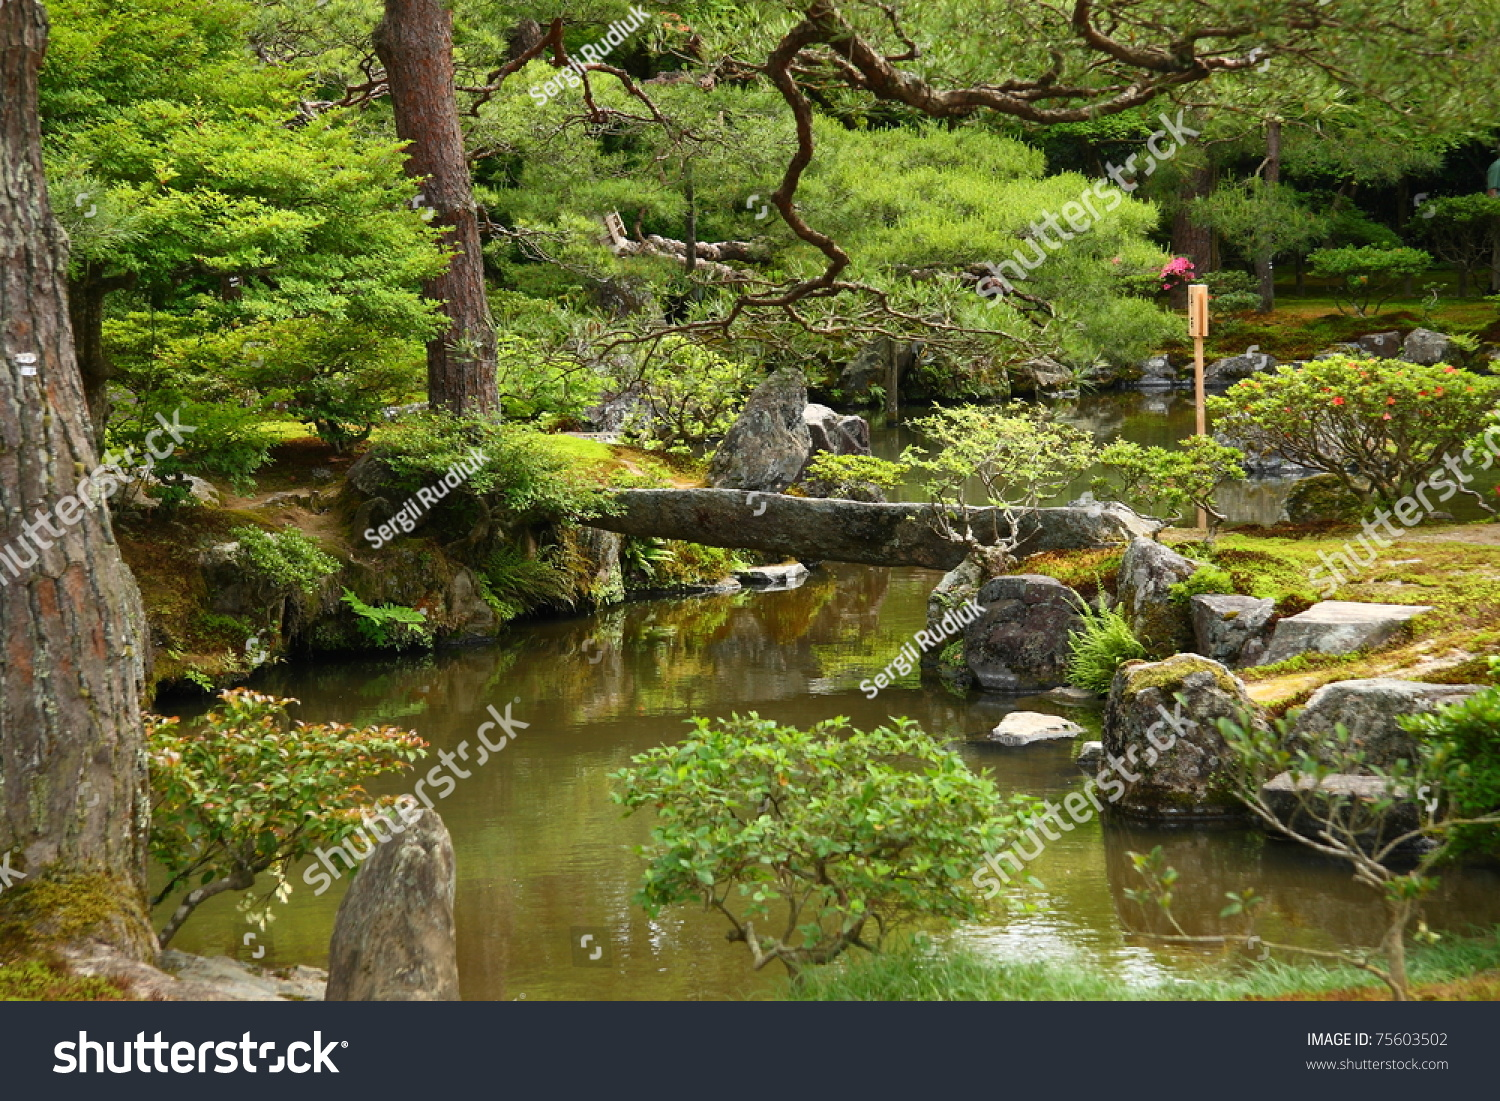 how to get to nijo castle from golden pavilion